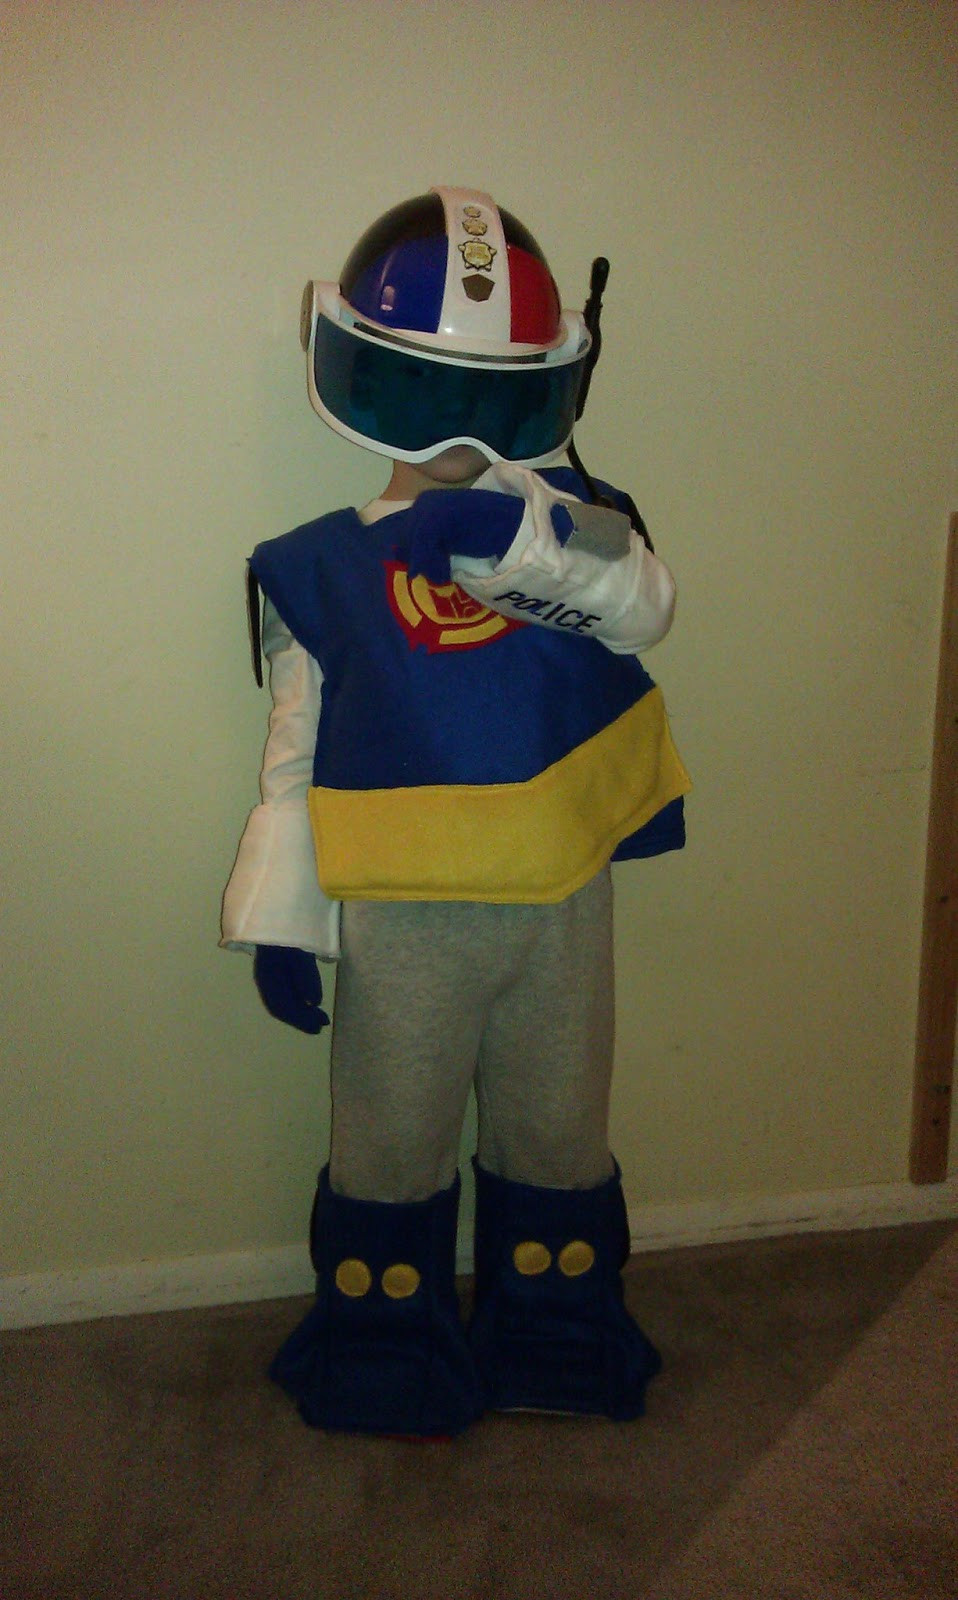 Best ideas about DIY Transformer Costume . Save or Pin Transformer Rescue Bot Costume DIY Now.